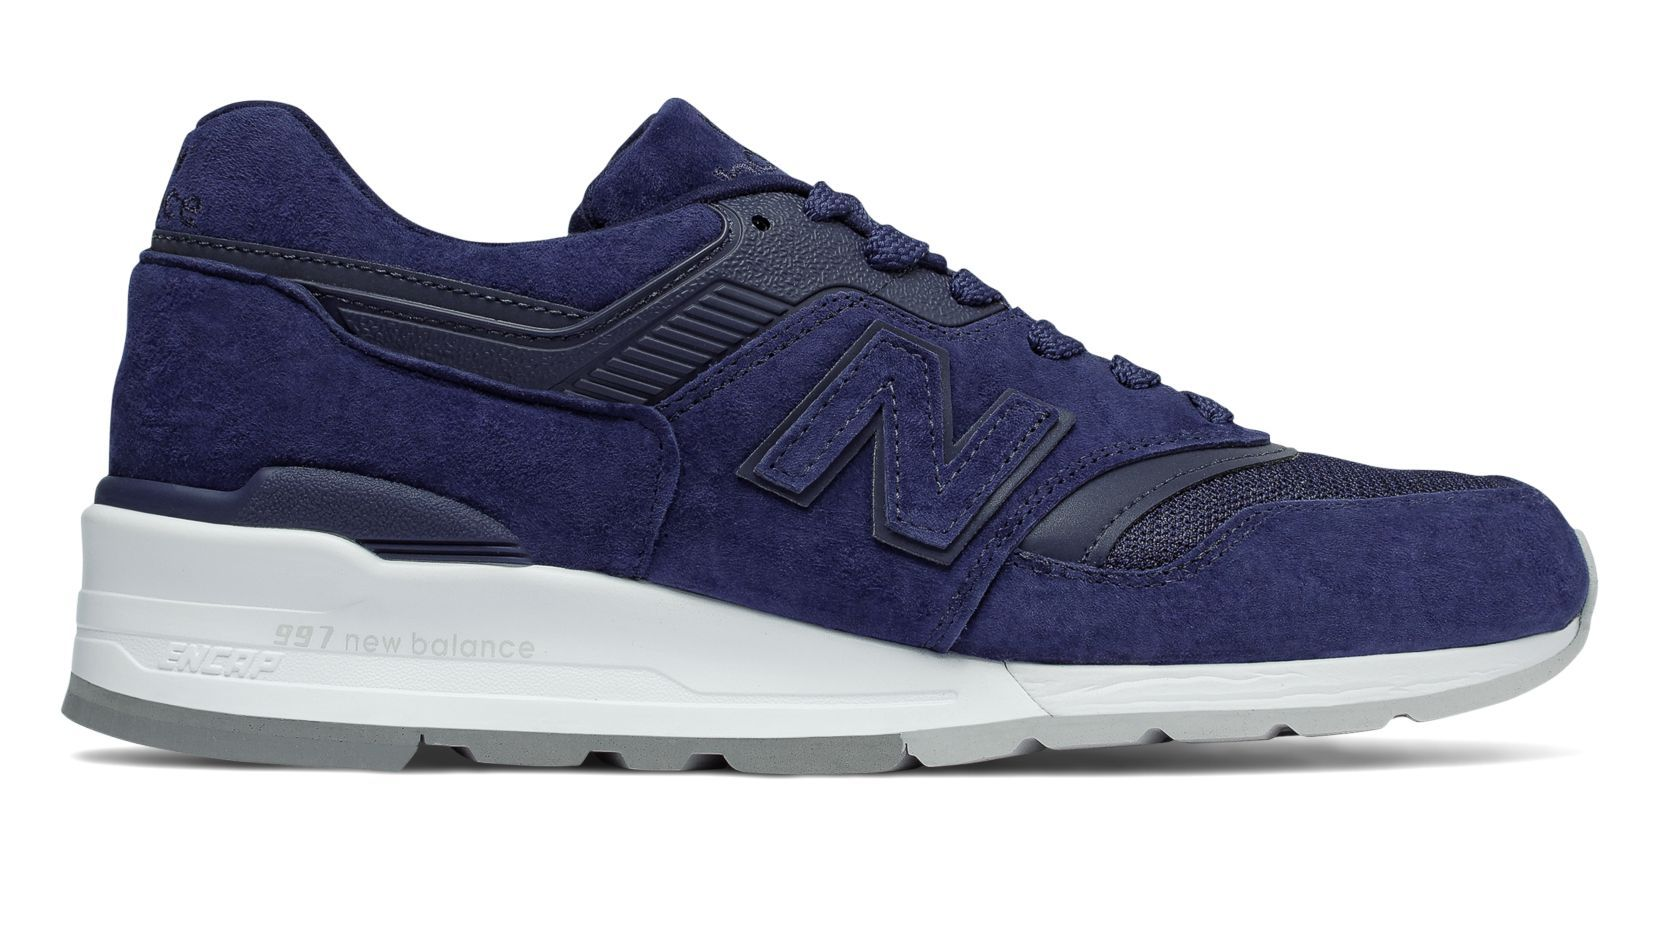 Купить кроссовки New Balance 997 Made in USA Color Spectrum M997CO D ... a637b2d1332d6